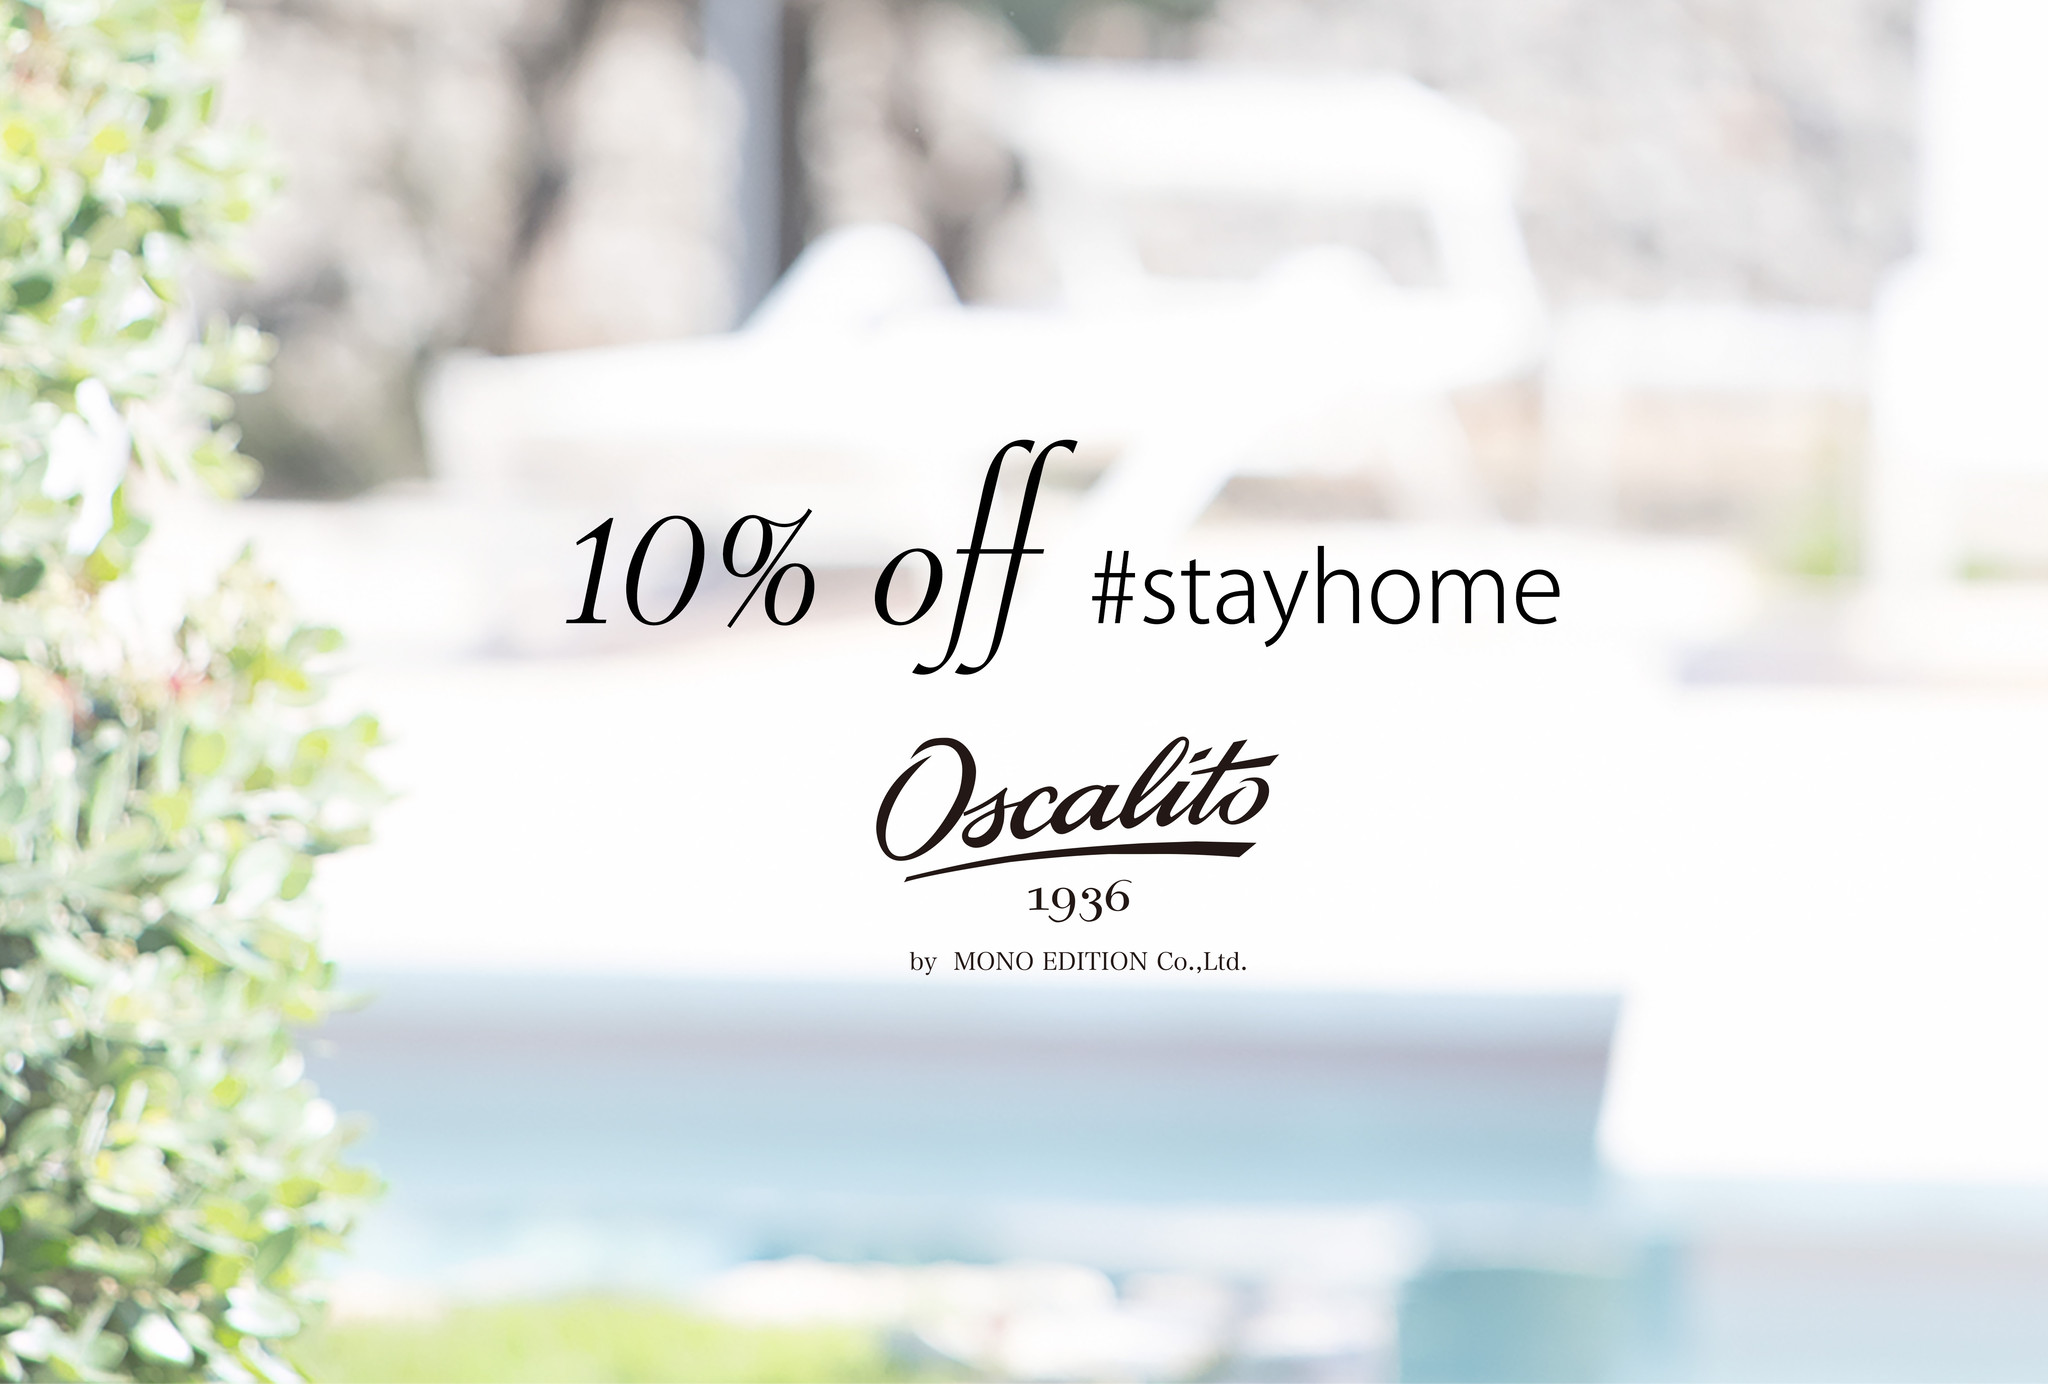 #stayhome 10% OFF!